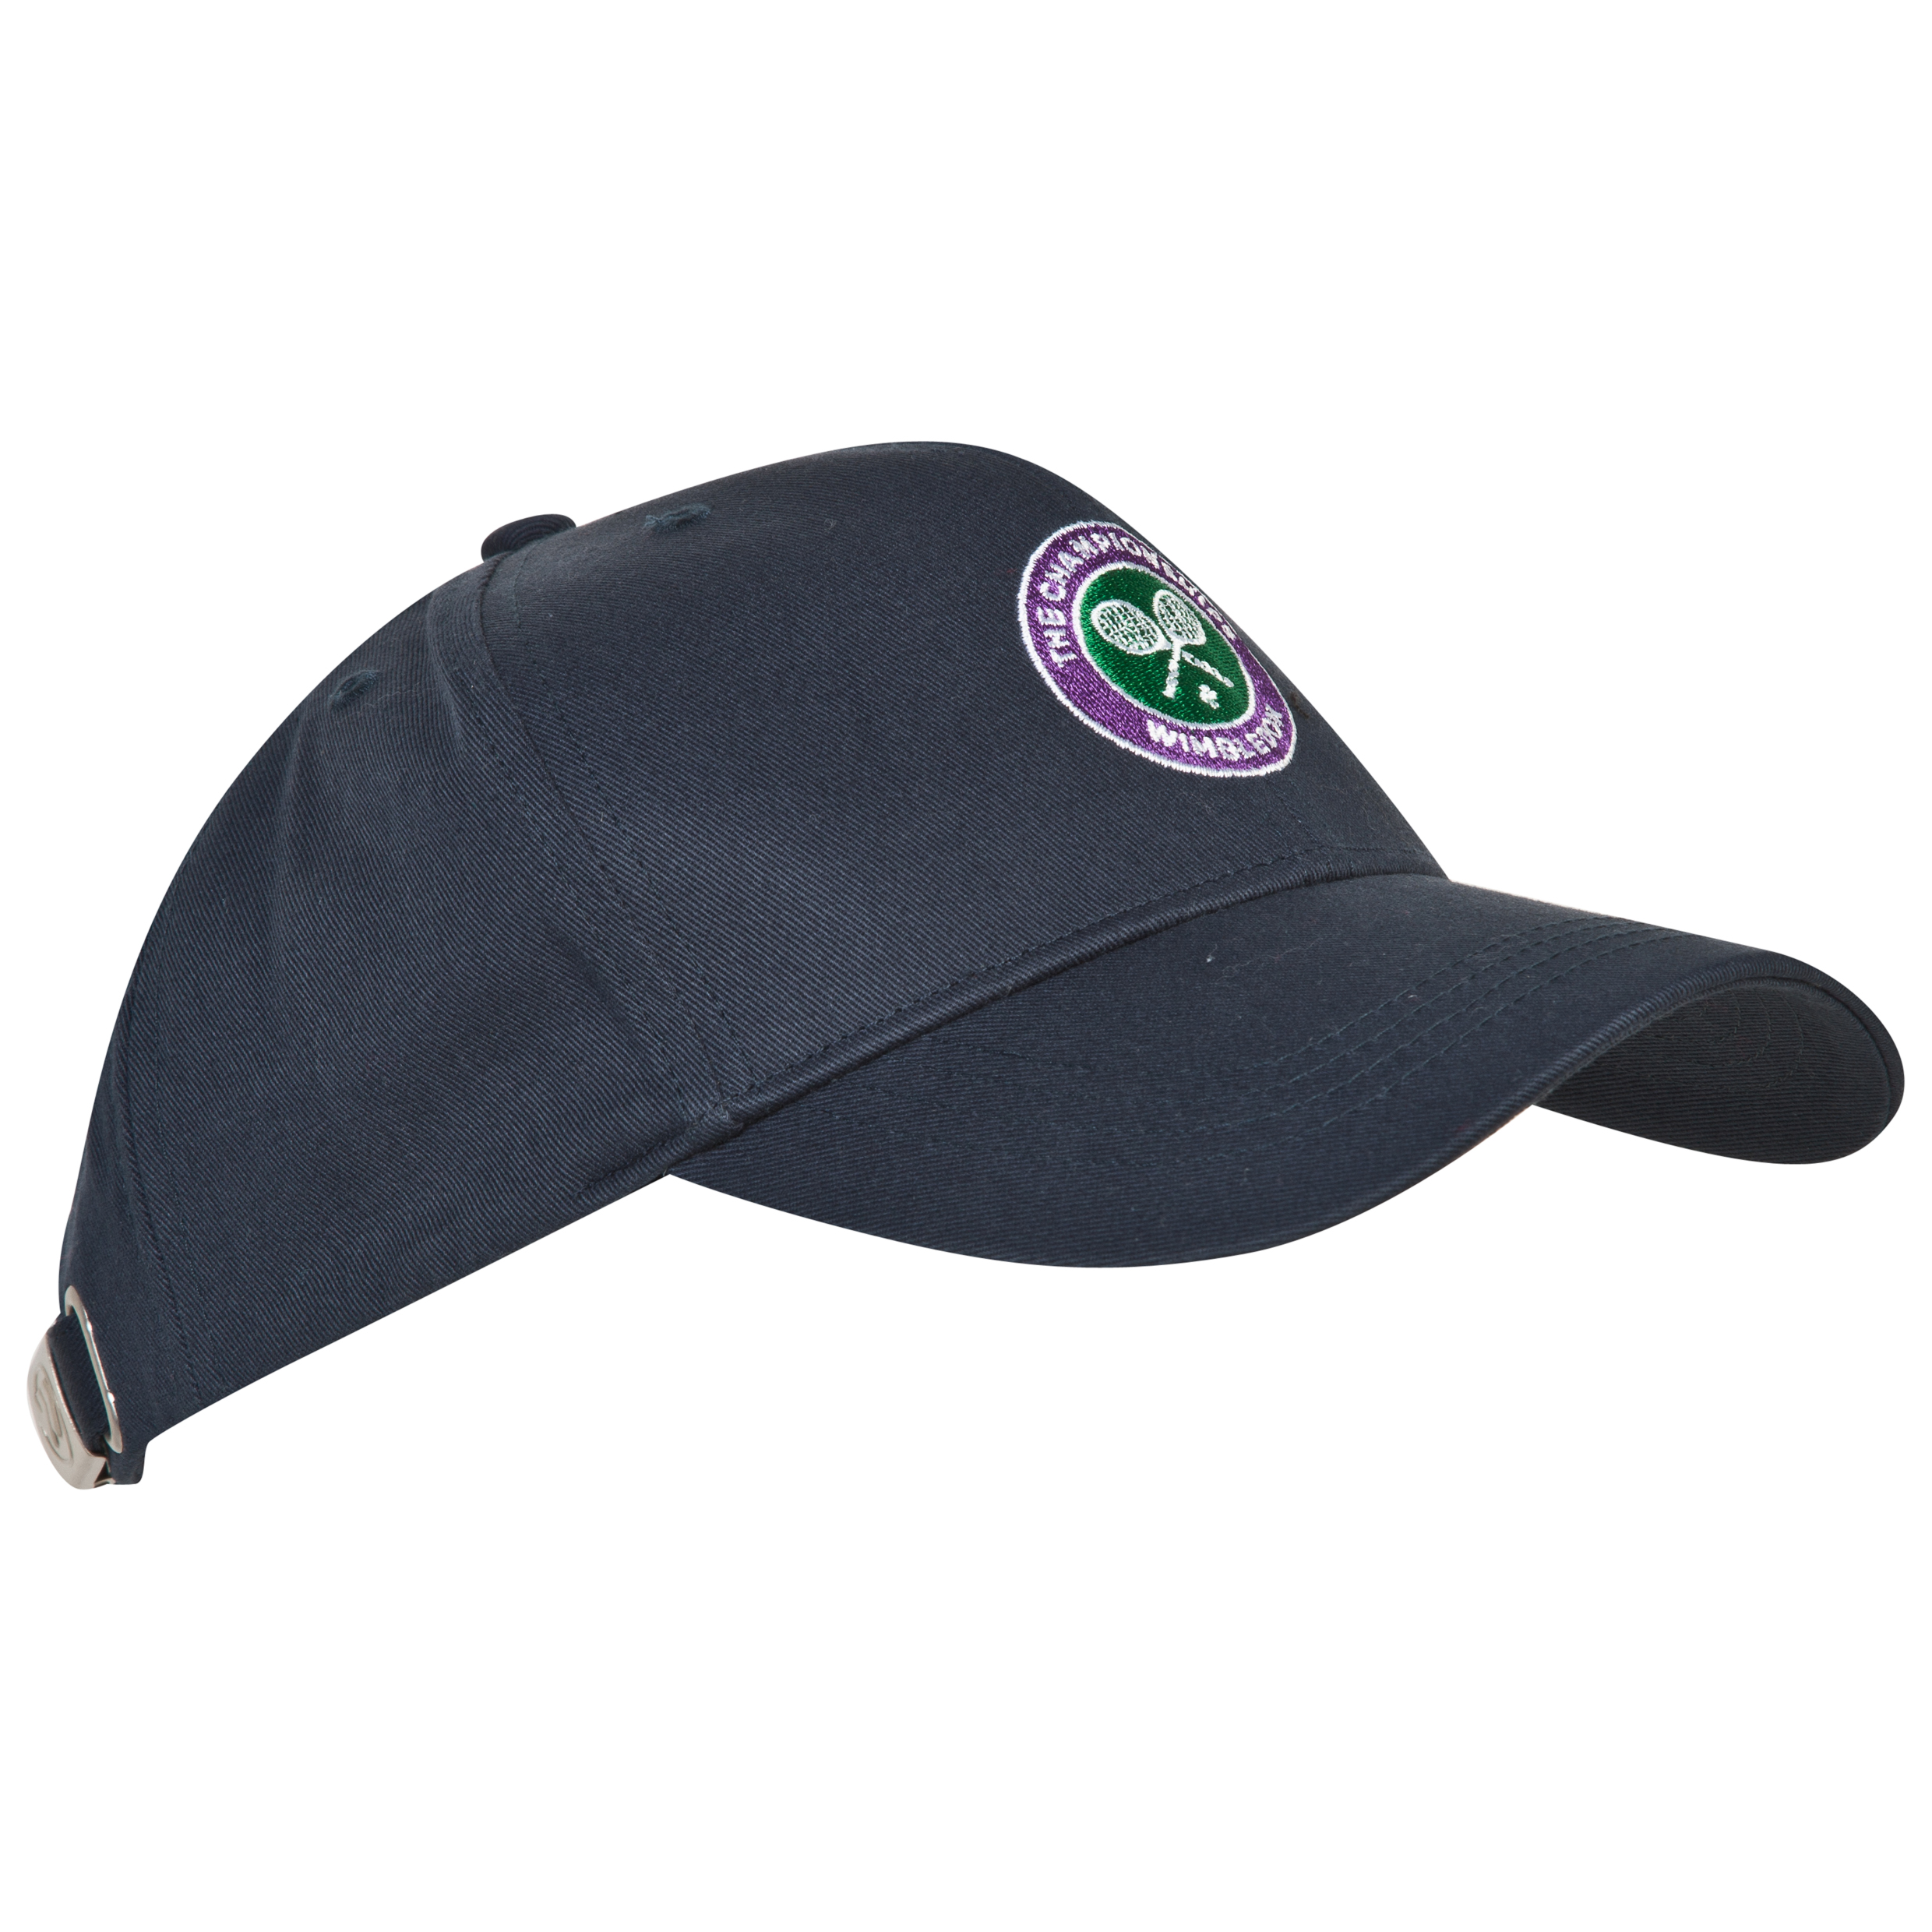 Wimbledon Crossed Rackets Cap - Kids Navy